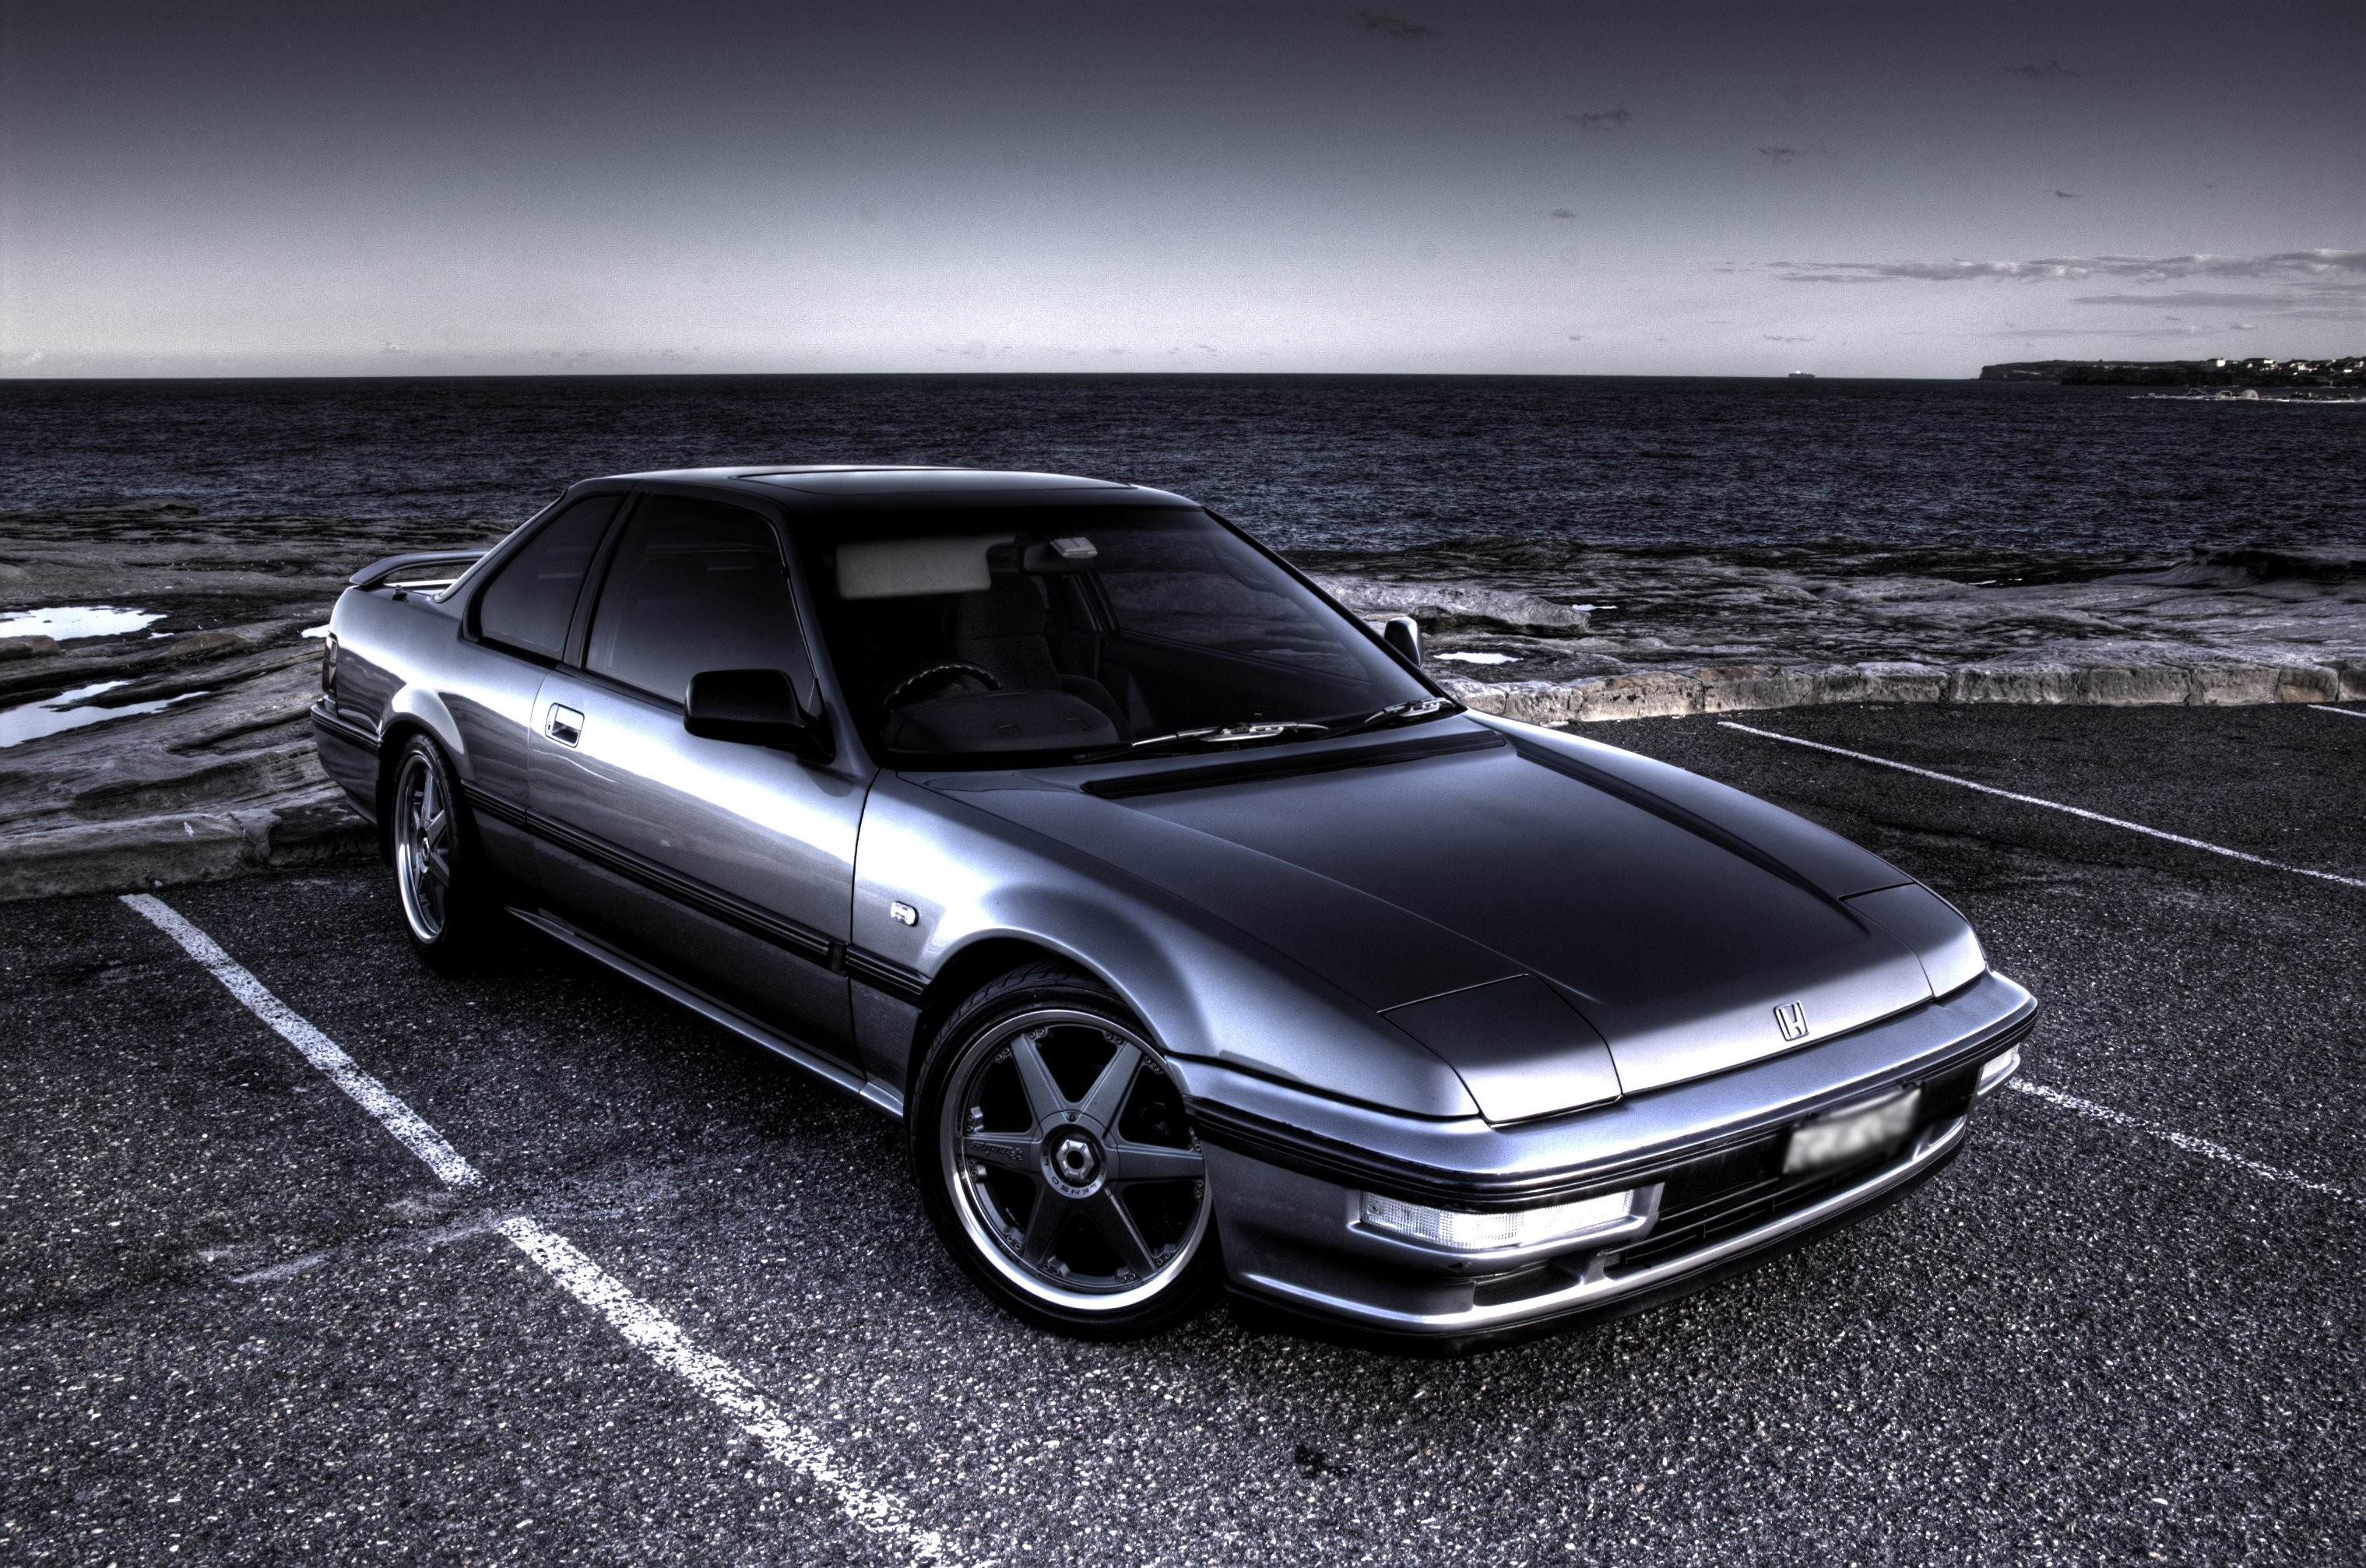 3039x2014 Honda Prelude cars coupe japan tuning wallpaper |  | 504086 |  WallpaperUP